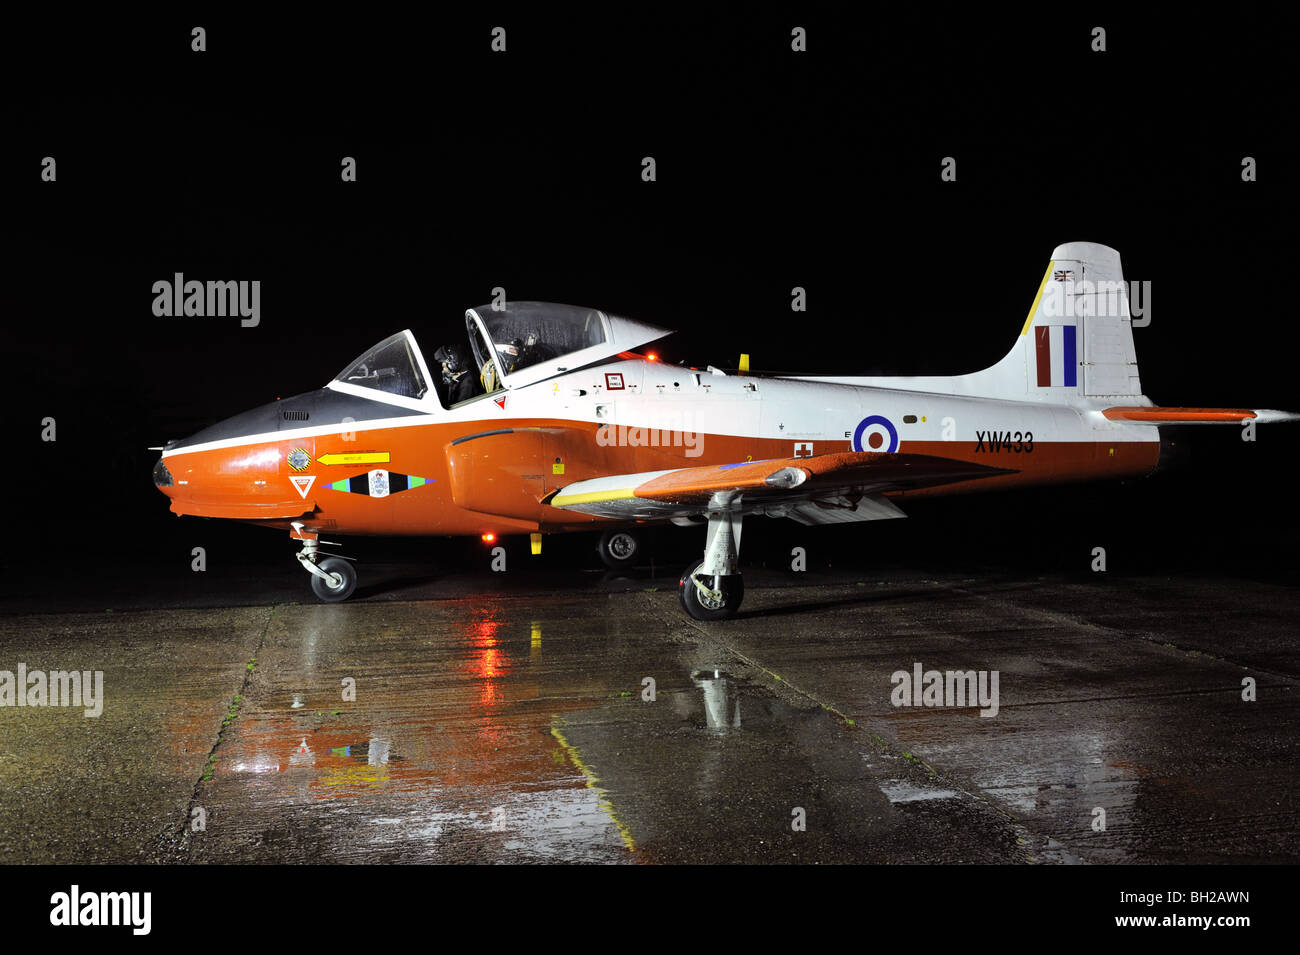 Vintage RAF Jet Provost training aircraft taxying in the dark during a vintage display at Coventry Airport, UK. - Stock Image